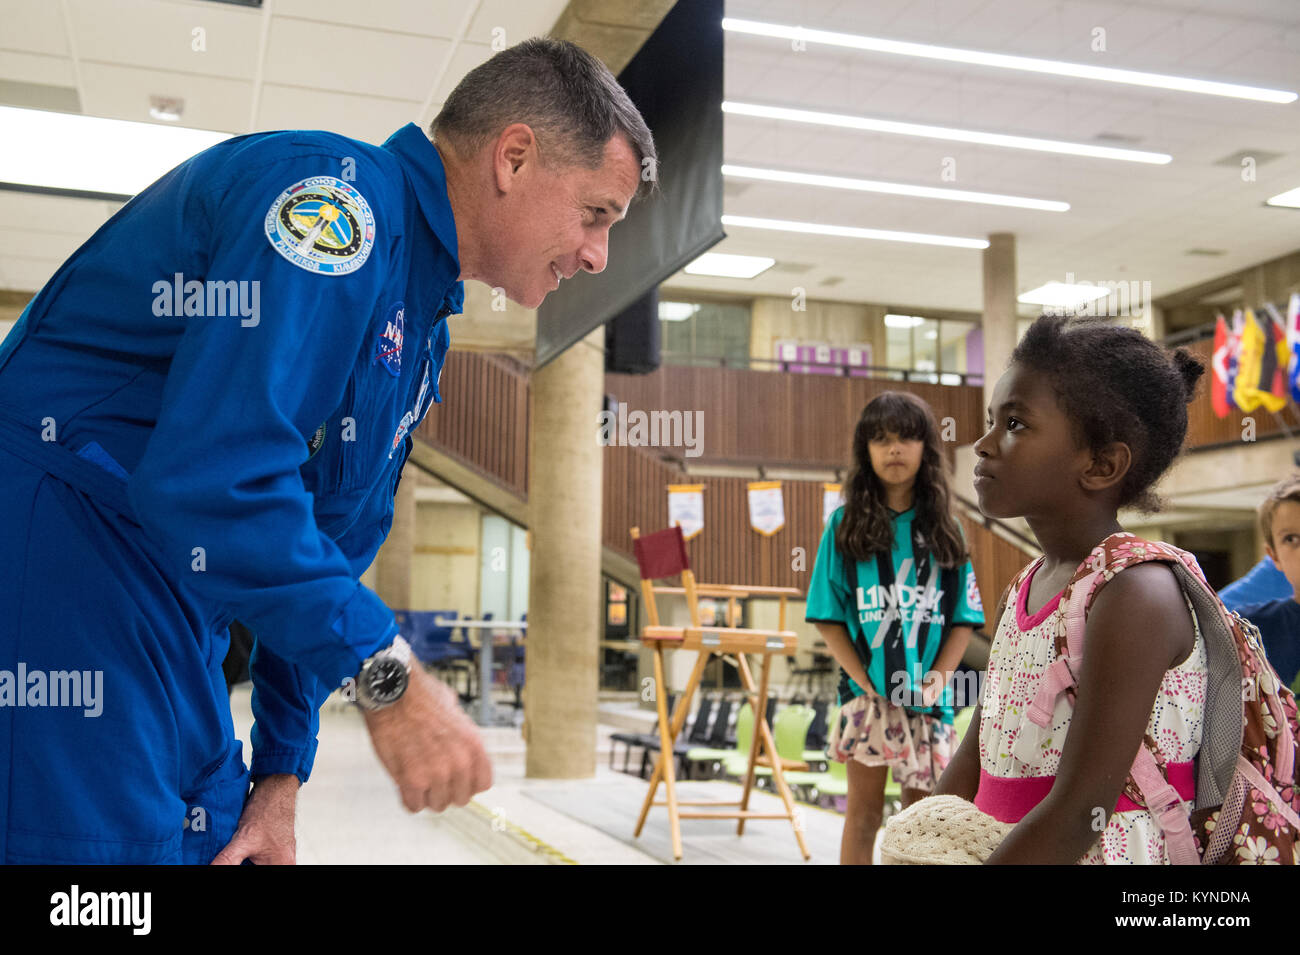 NASA astronaut Shane Kimbrough speaks to an audience member after giving a presentation about his time onboard the - Stock Image